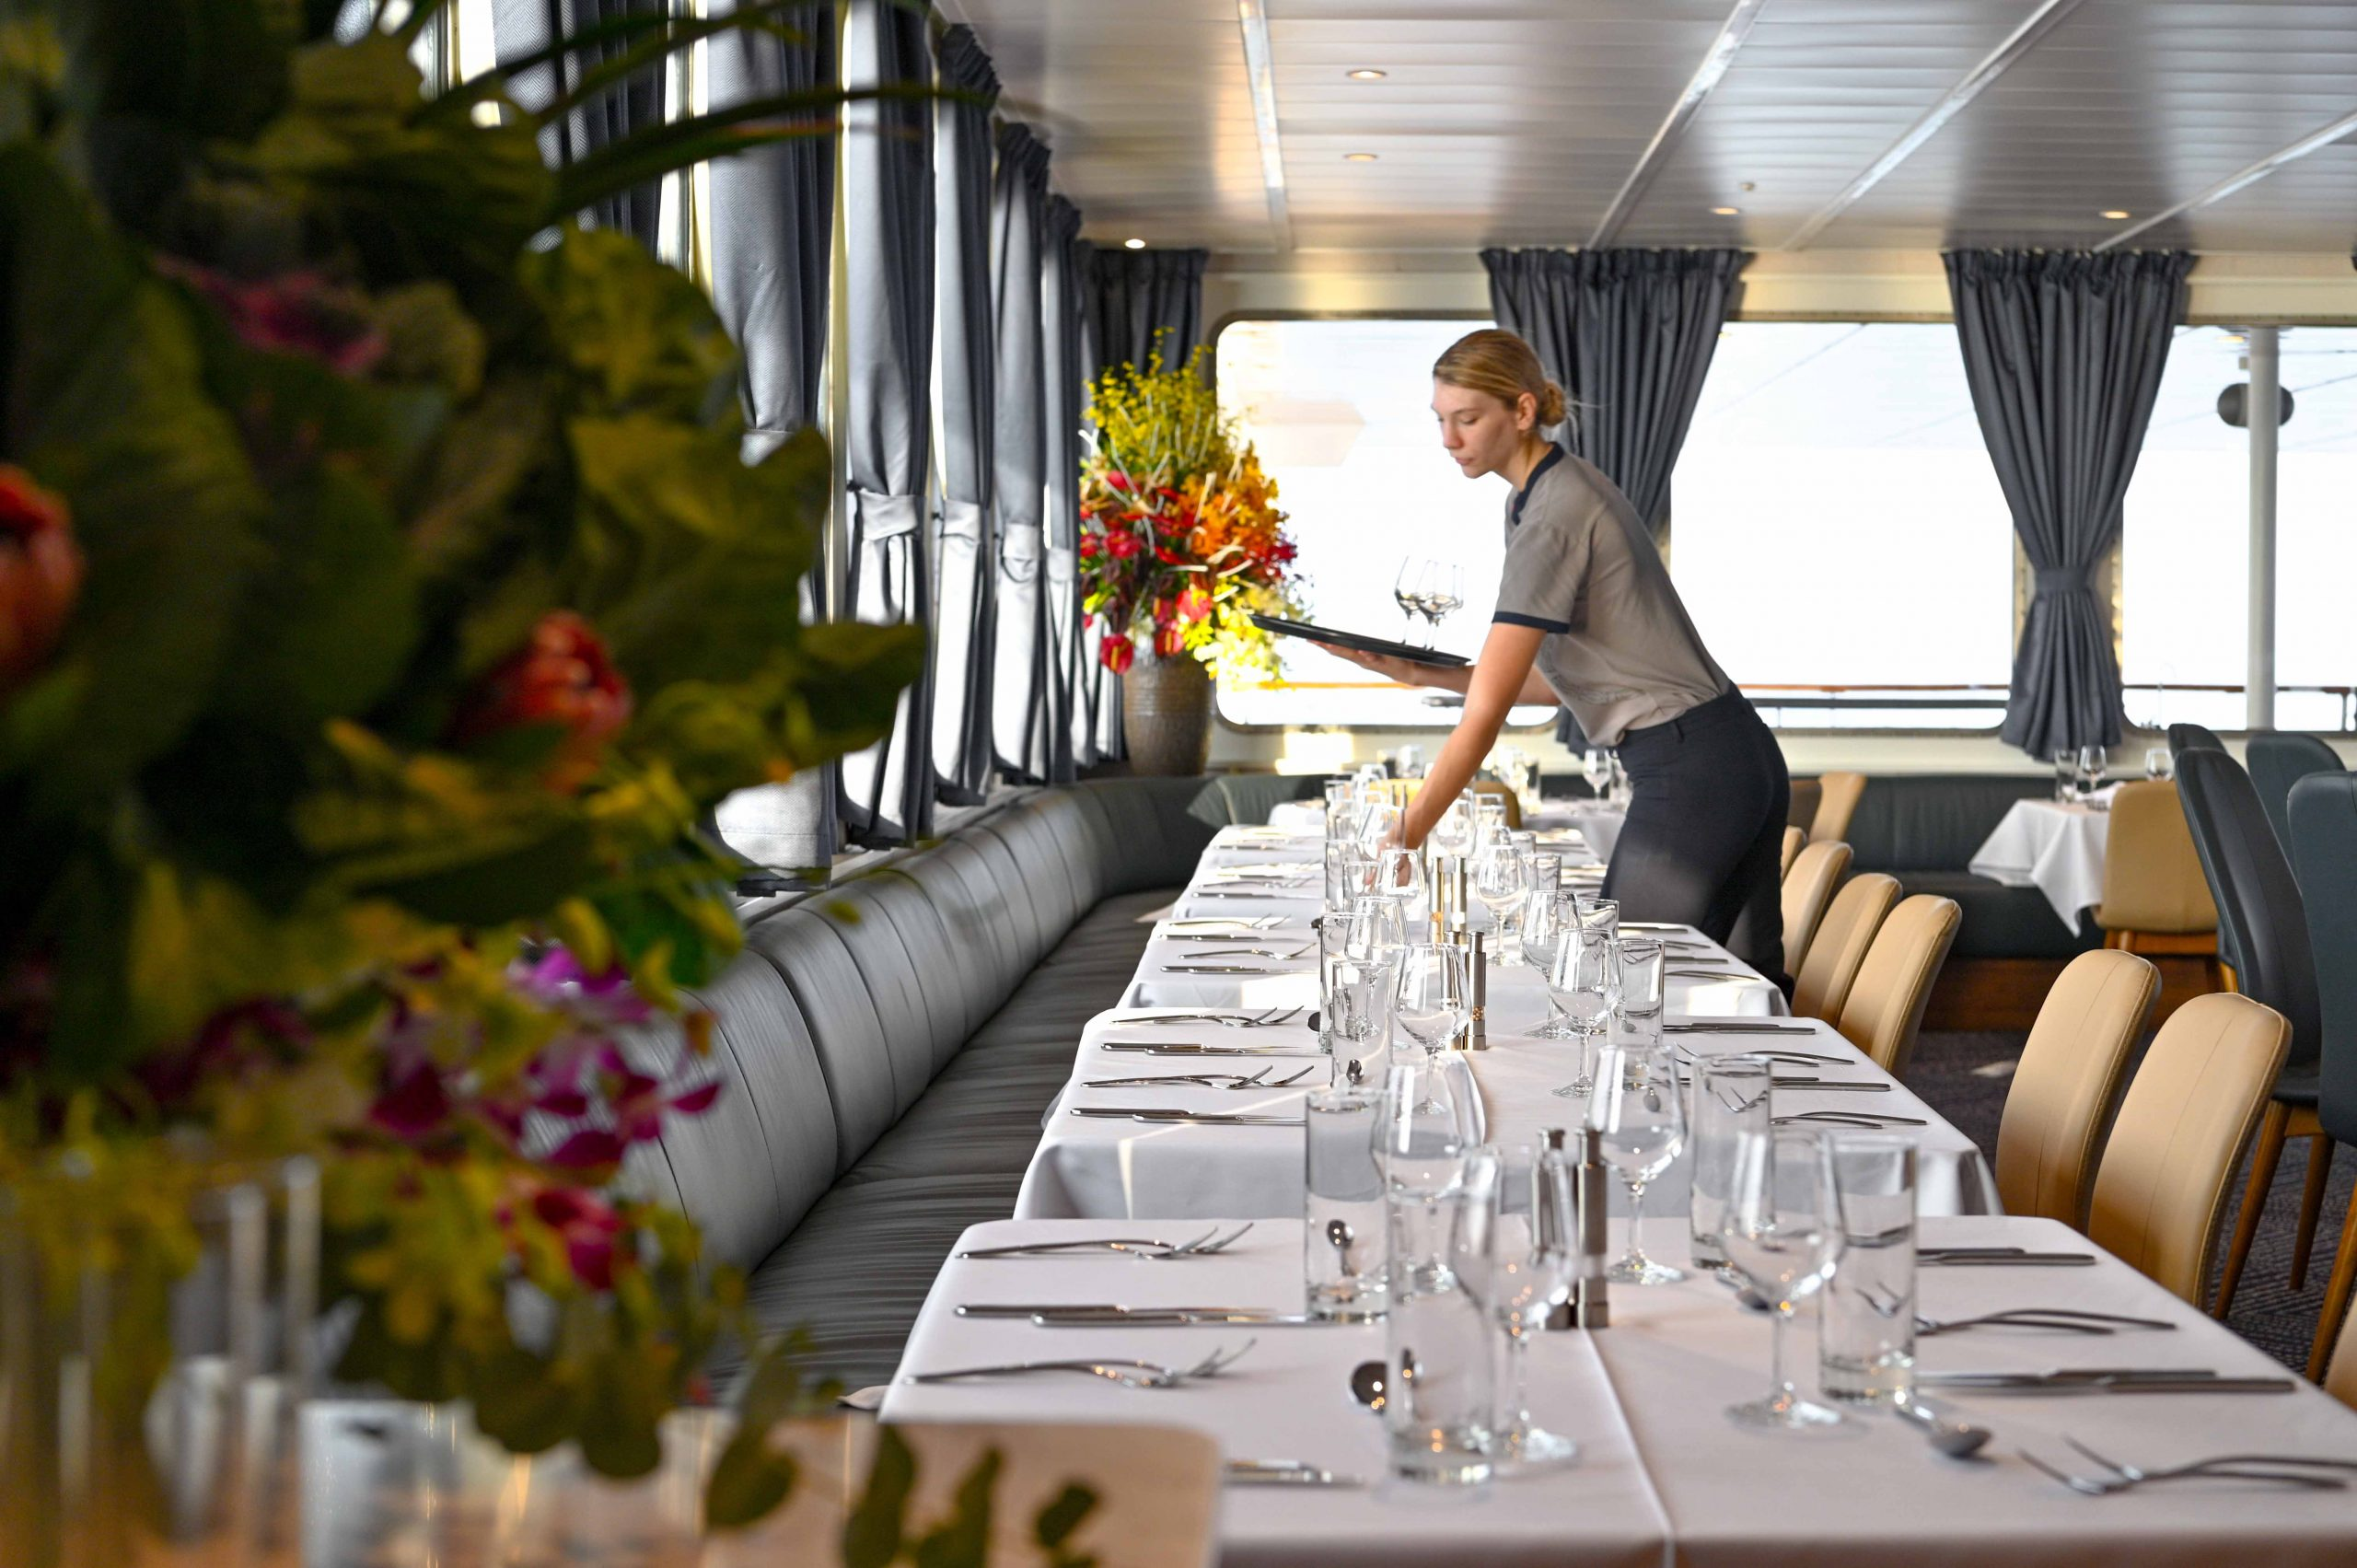 Australian small ship cruise line Coral Expeditions prepares to expand its domestic itineraries, with the return of Coral Adventurer after a ten-month hiatus.